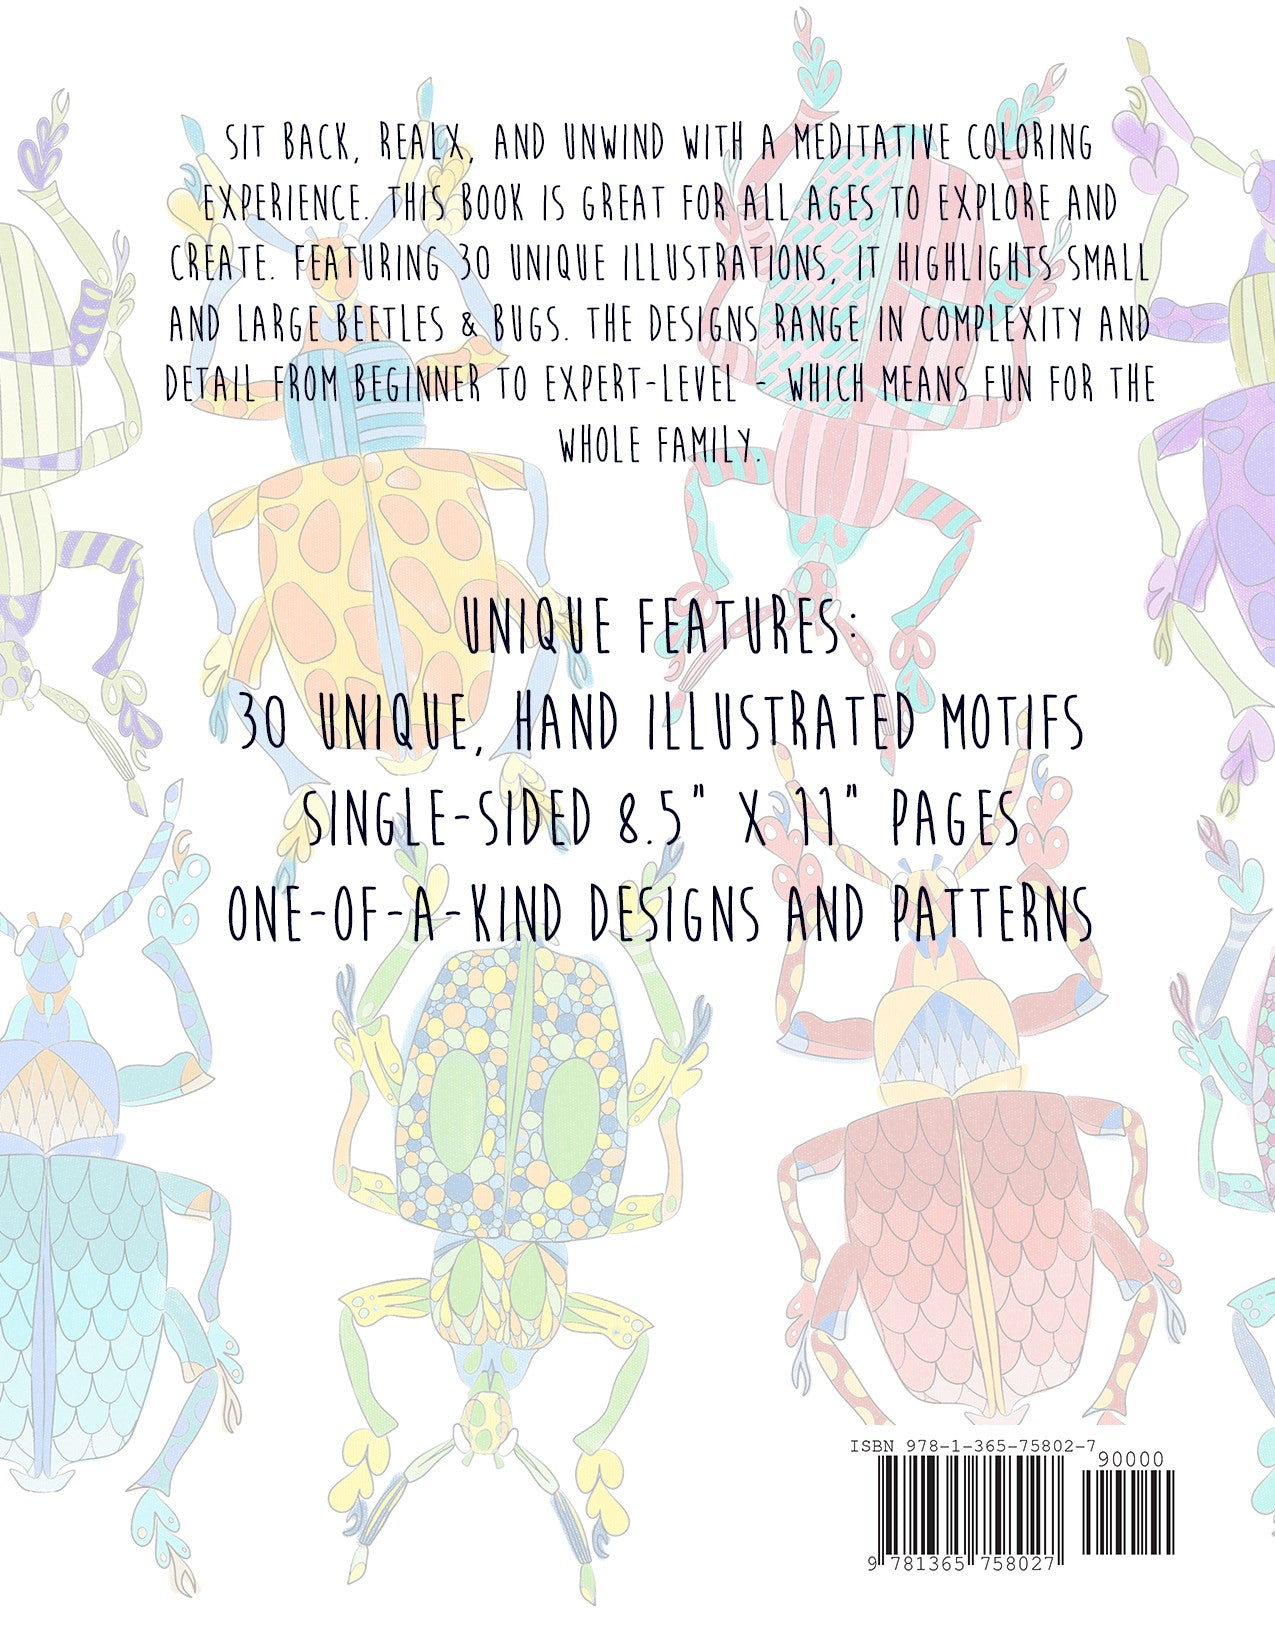 Mindfulness coloring book -  Beetle Bugs A Mindfulness Coloring Book For All Ages